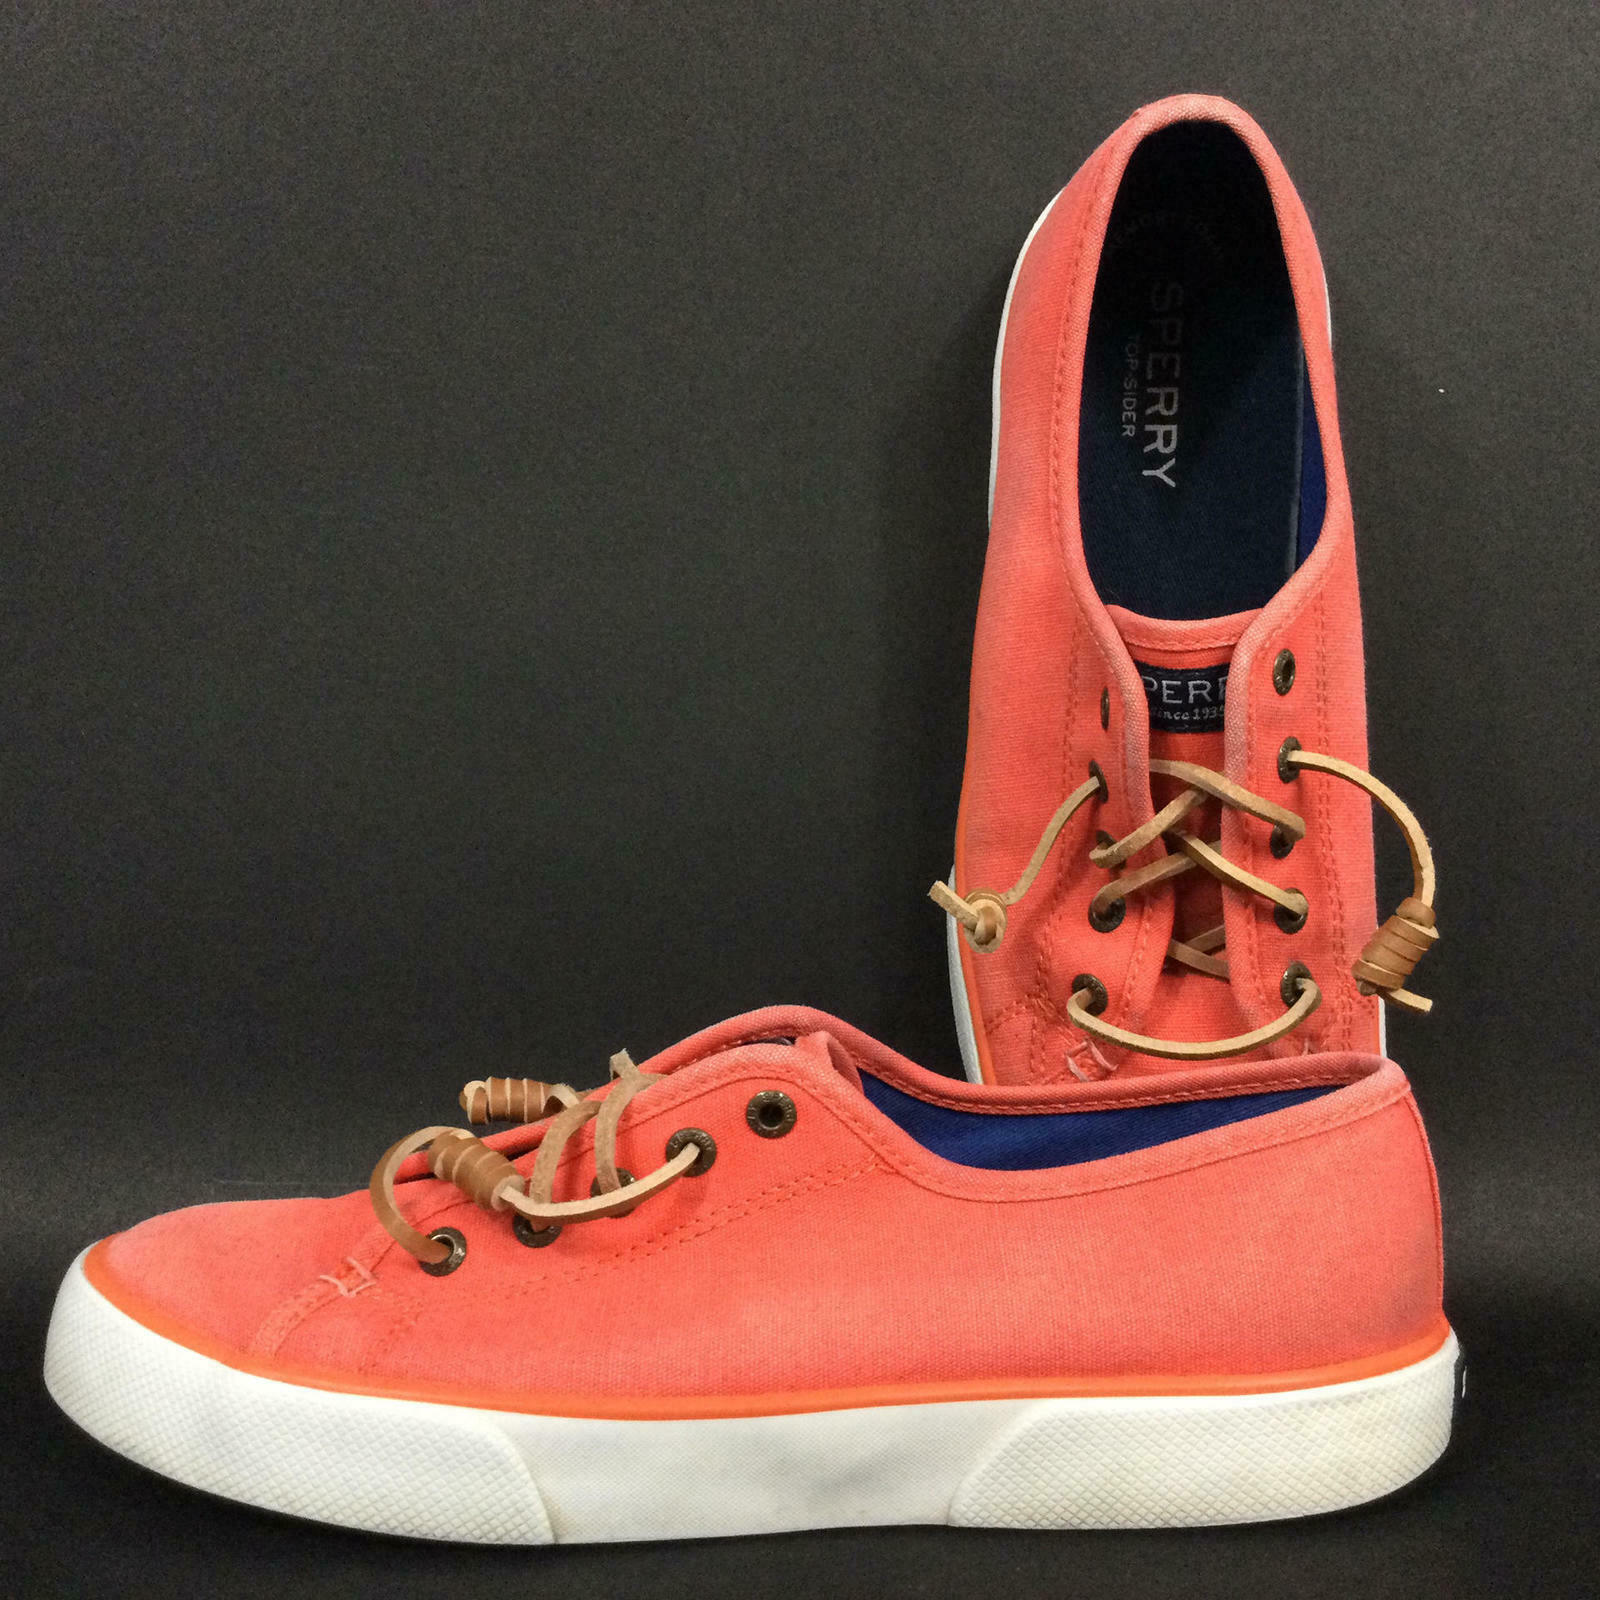 Sperry Women's Size 7(M) Coral Pink Top-Sider Boat Shoes - STS96880 - C16-61432